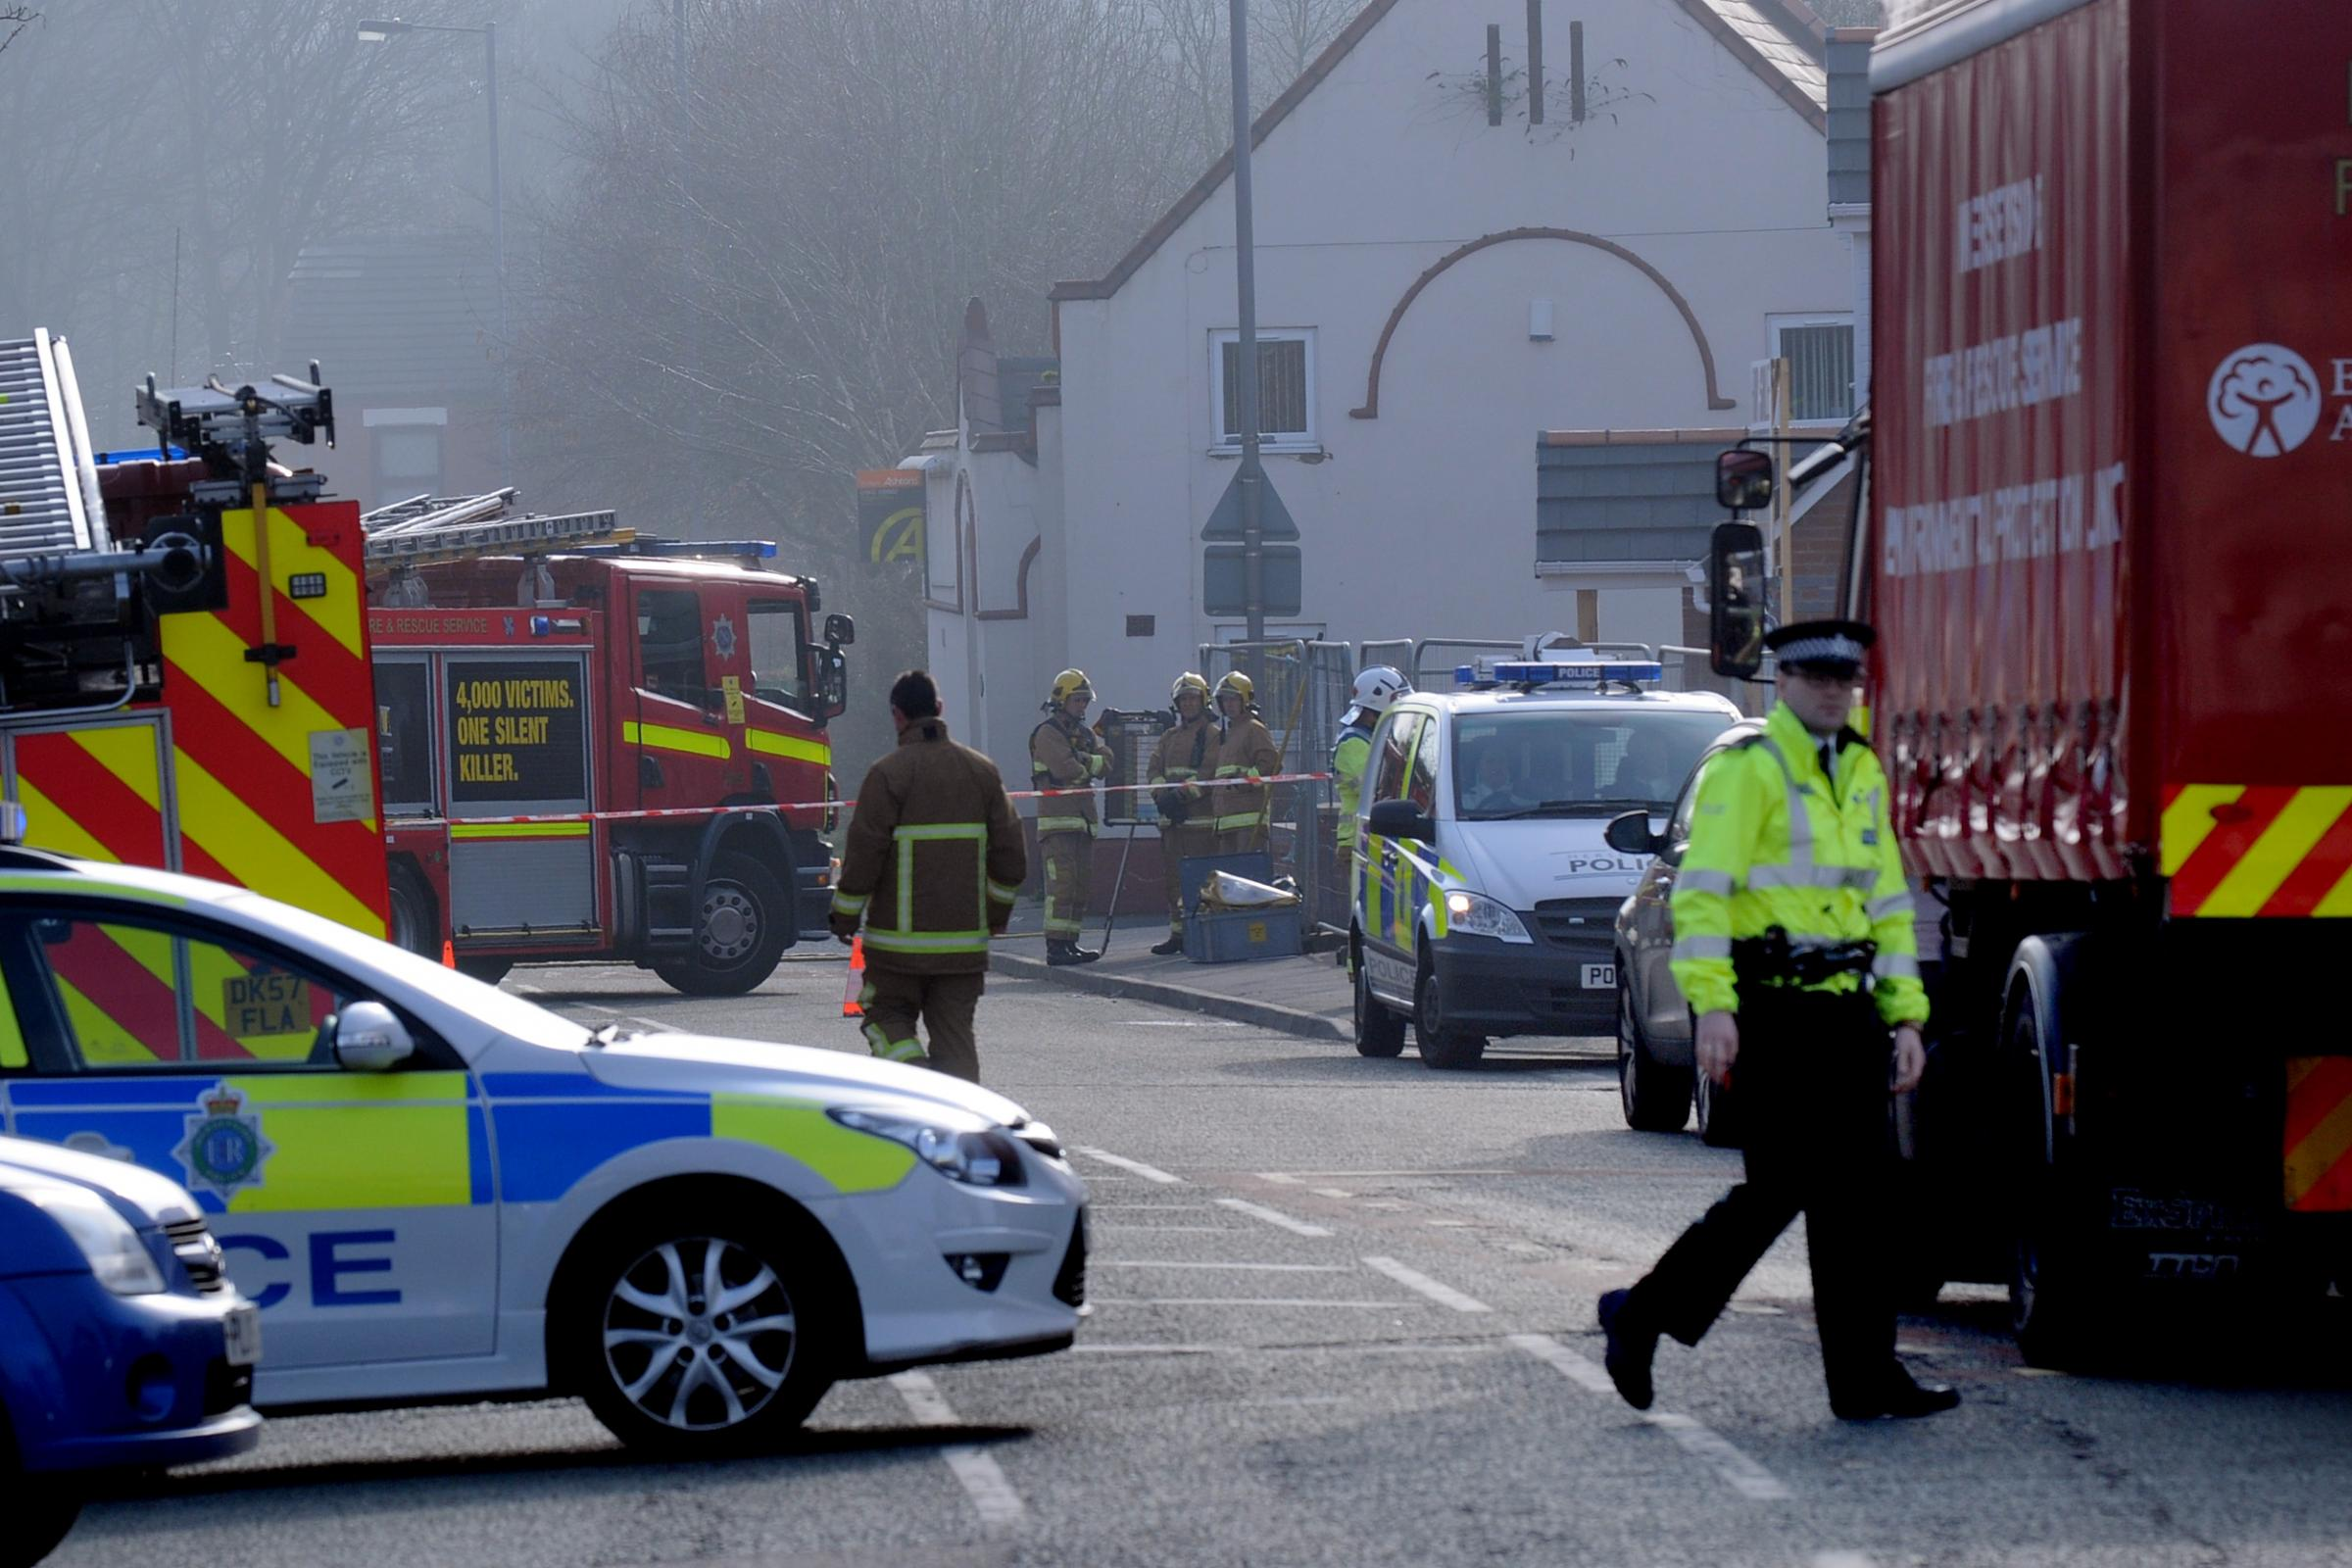 The Star's photographer Dave Gillespie captures the scene in Sutton